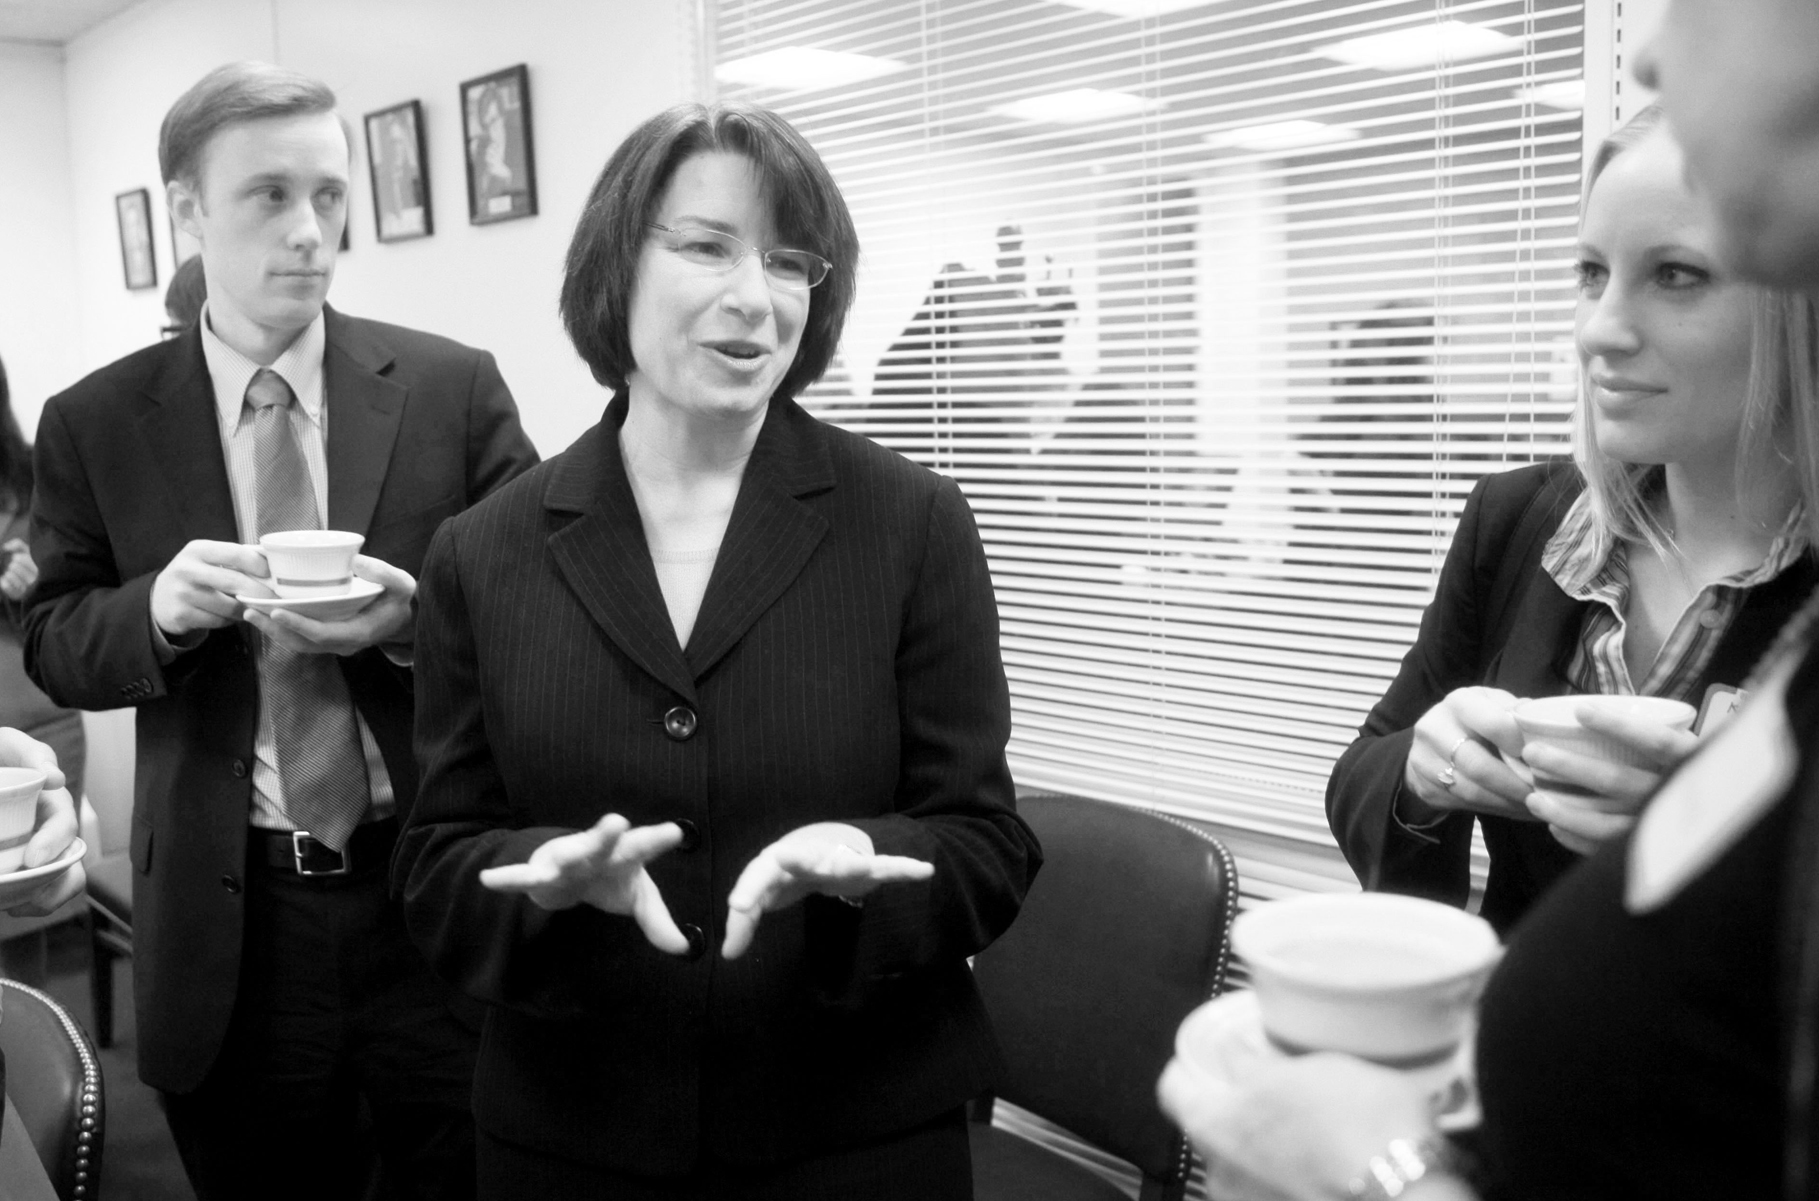 U.S. Senator Amy Klobuchar recently discussed, on her visit to Gustavus, her belief that global warming is a